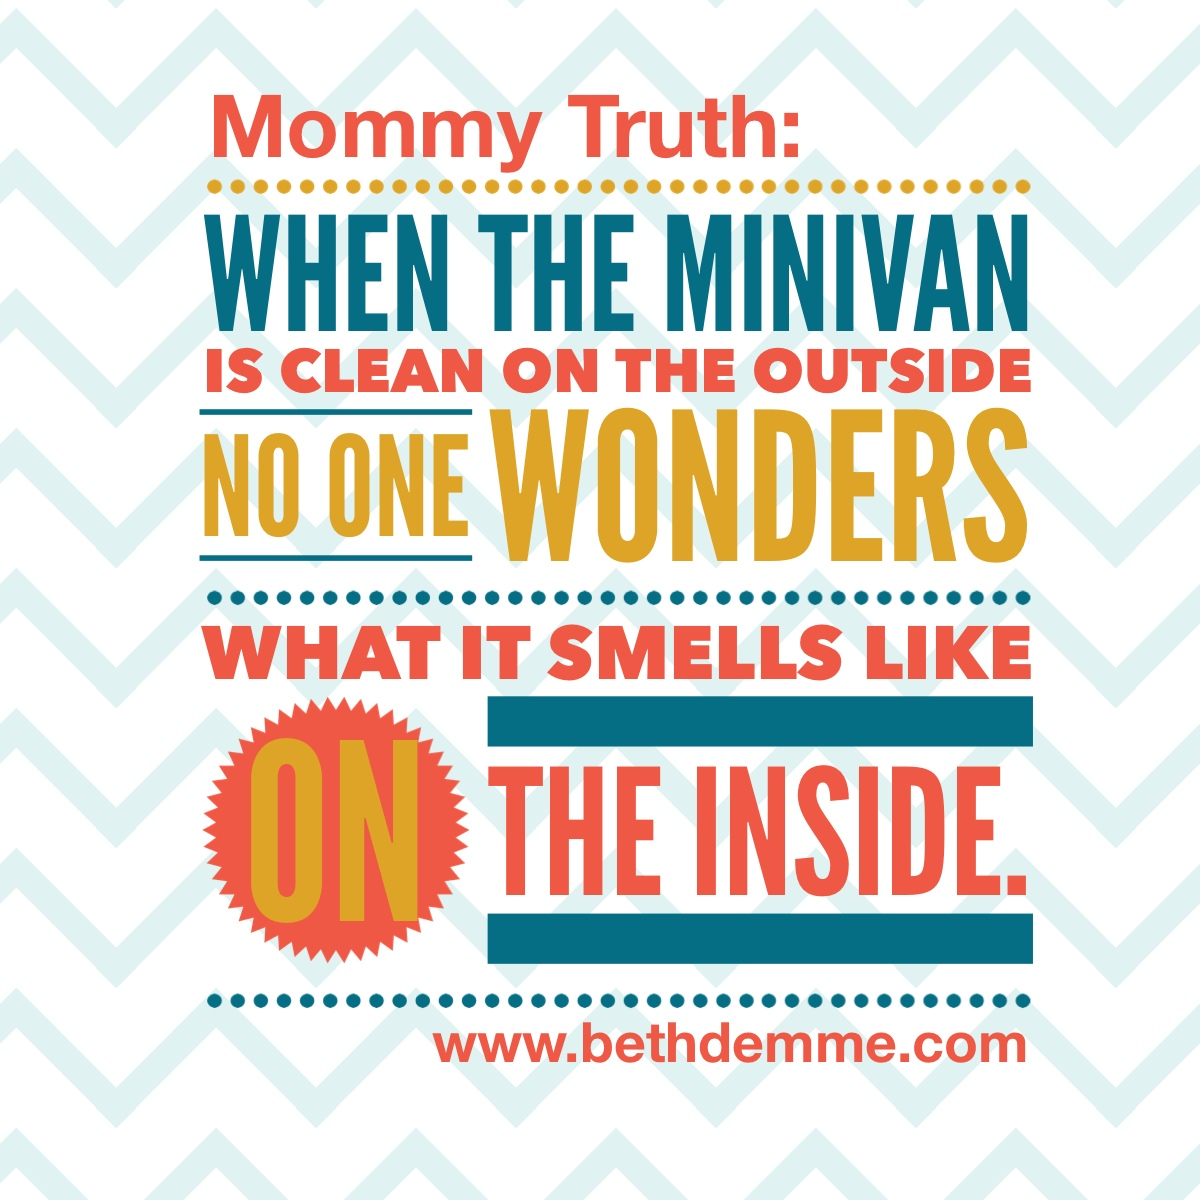 Mommy Truth by Beth Demme